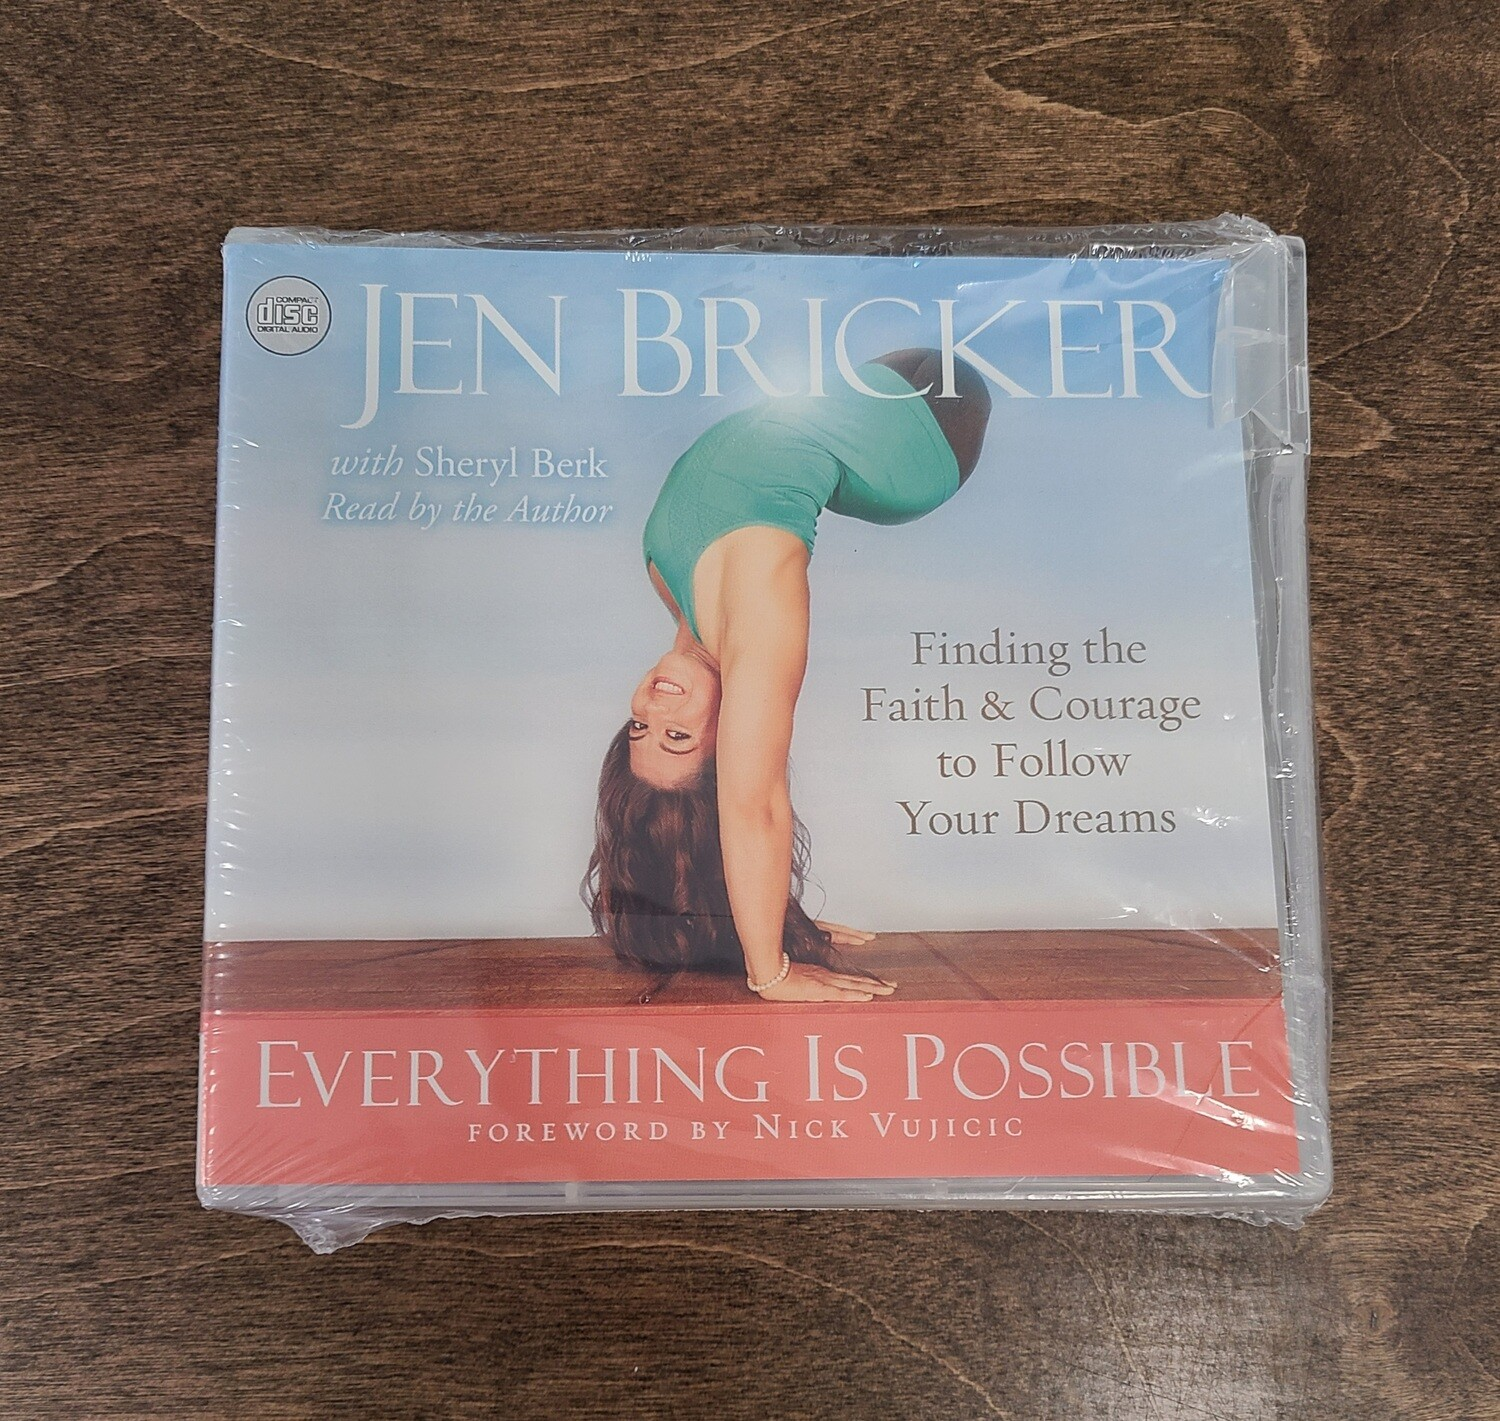 Everything is Possible by Jen Bricker and Nick Vujicic Audiobook